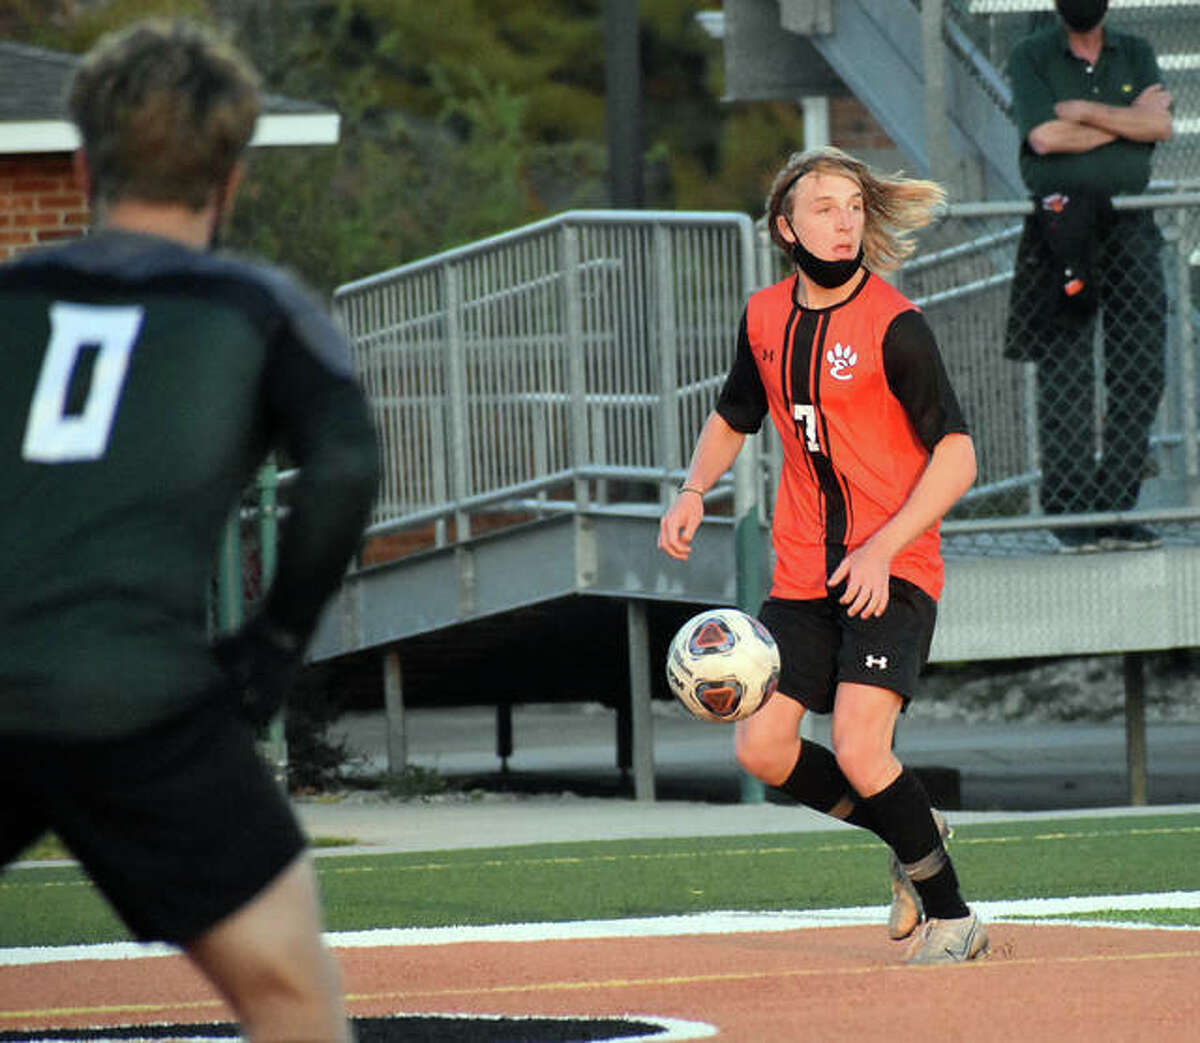 Edwardsville's Ben Loftus streaks down the side of the field and looks for a teammate to cross a pass to during the first half. O'Fallon keeper Ben Eckell is in the foreground.